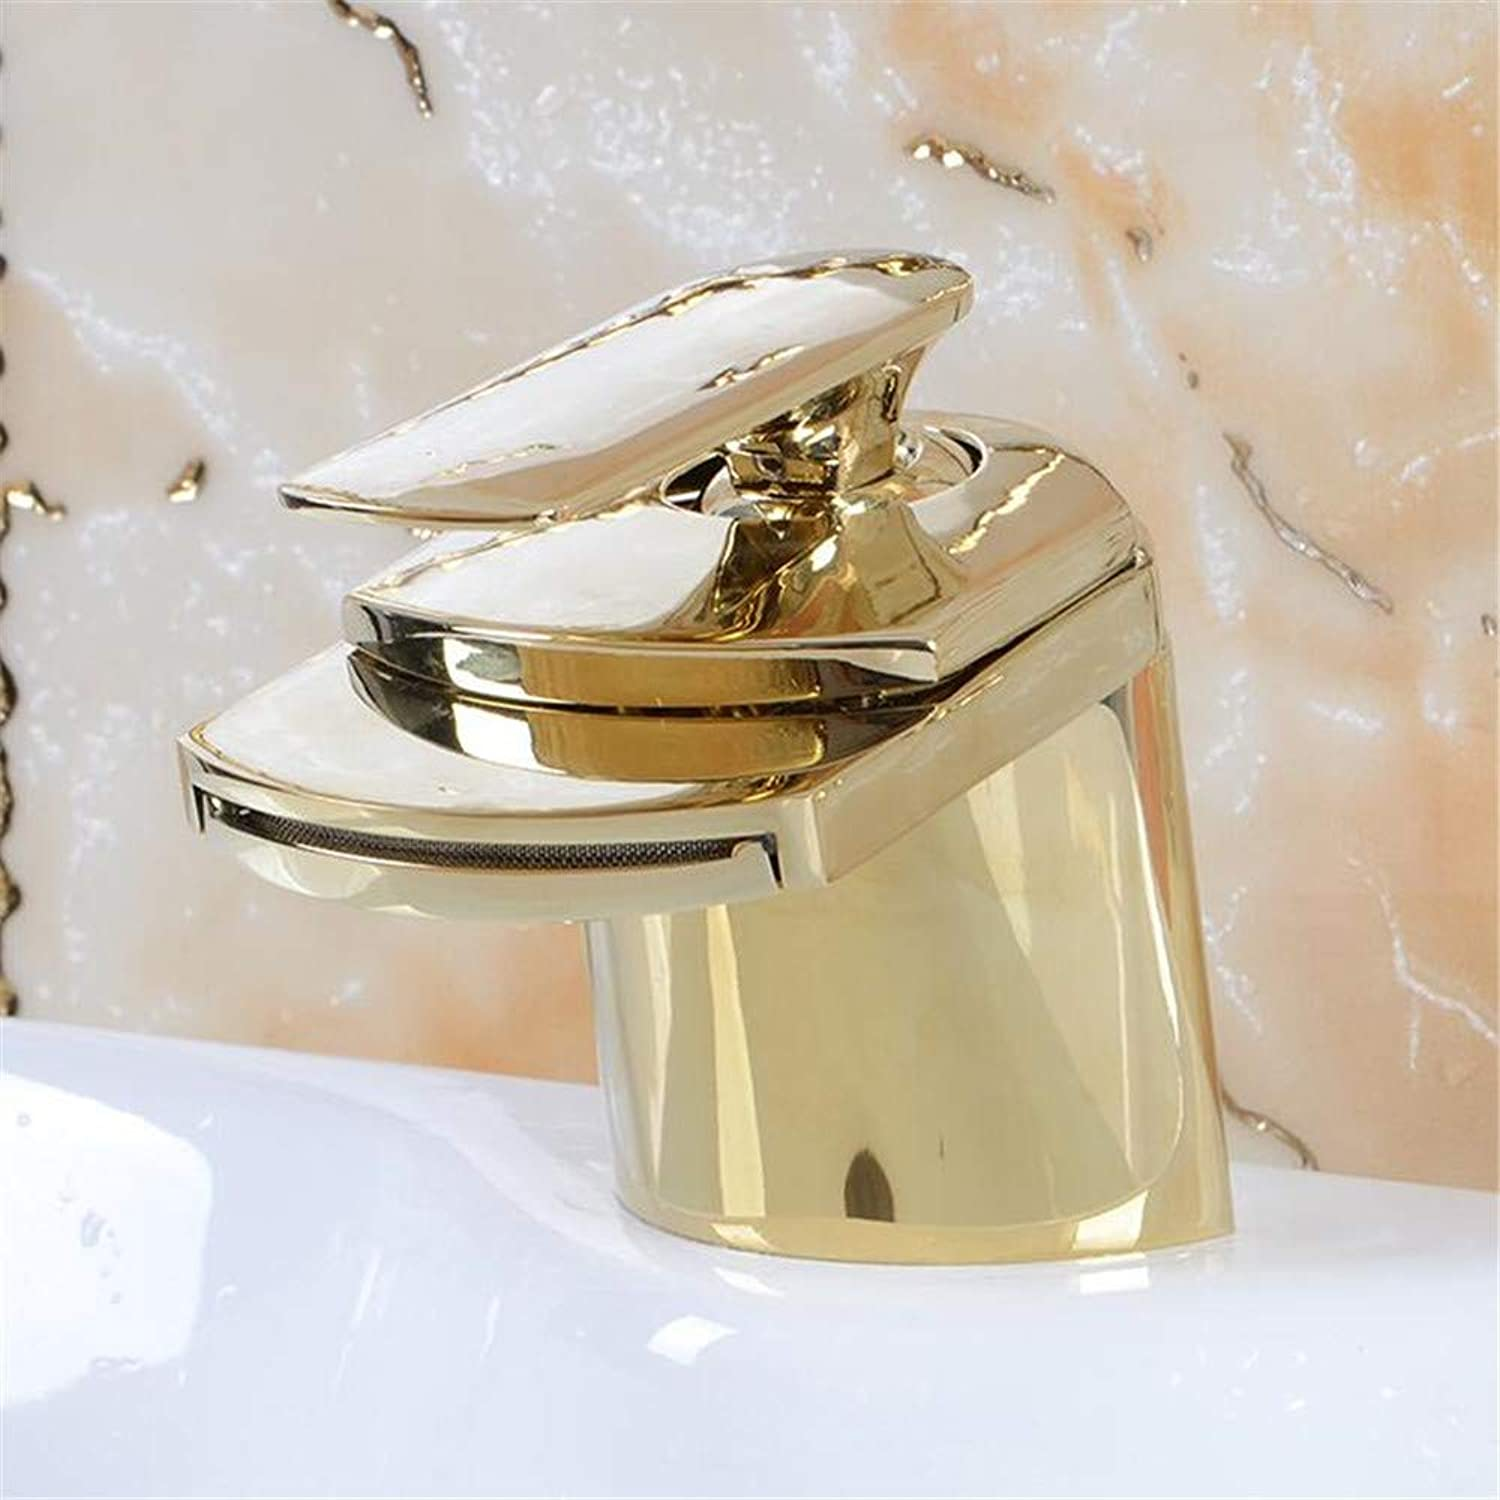 Copper Faucet Bathroom Antique Wide Mouth Waterfall Faucet Bathroom Supplies Table Local gold Hand wash Faucet